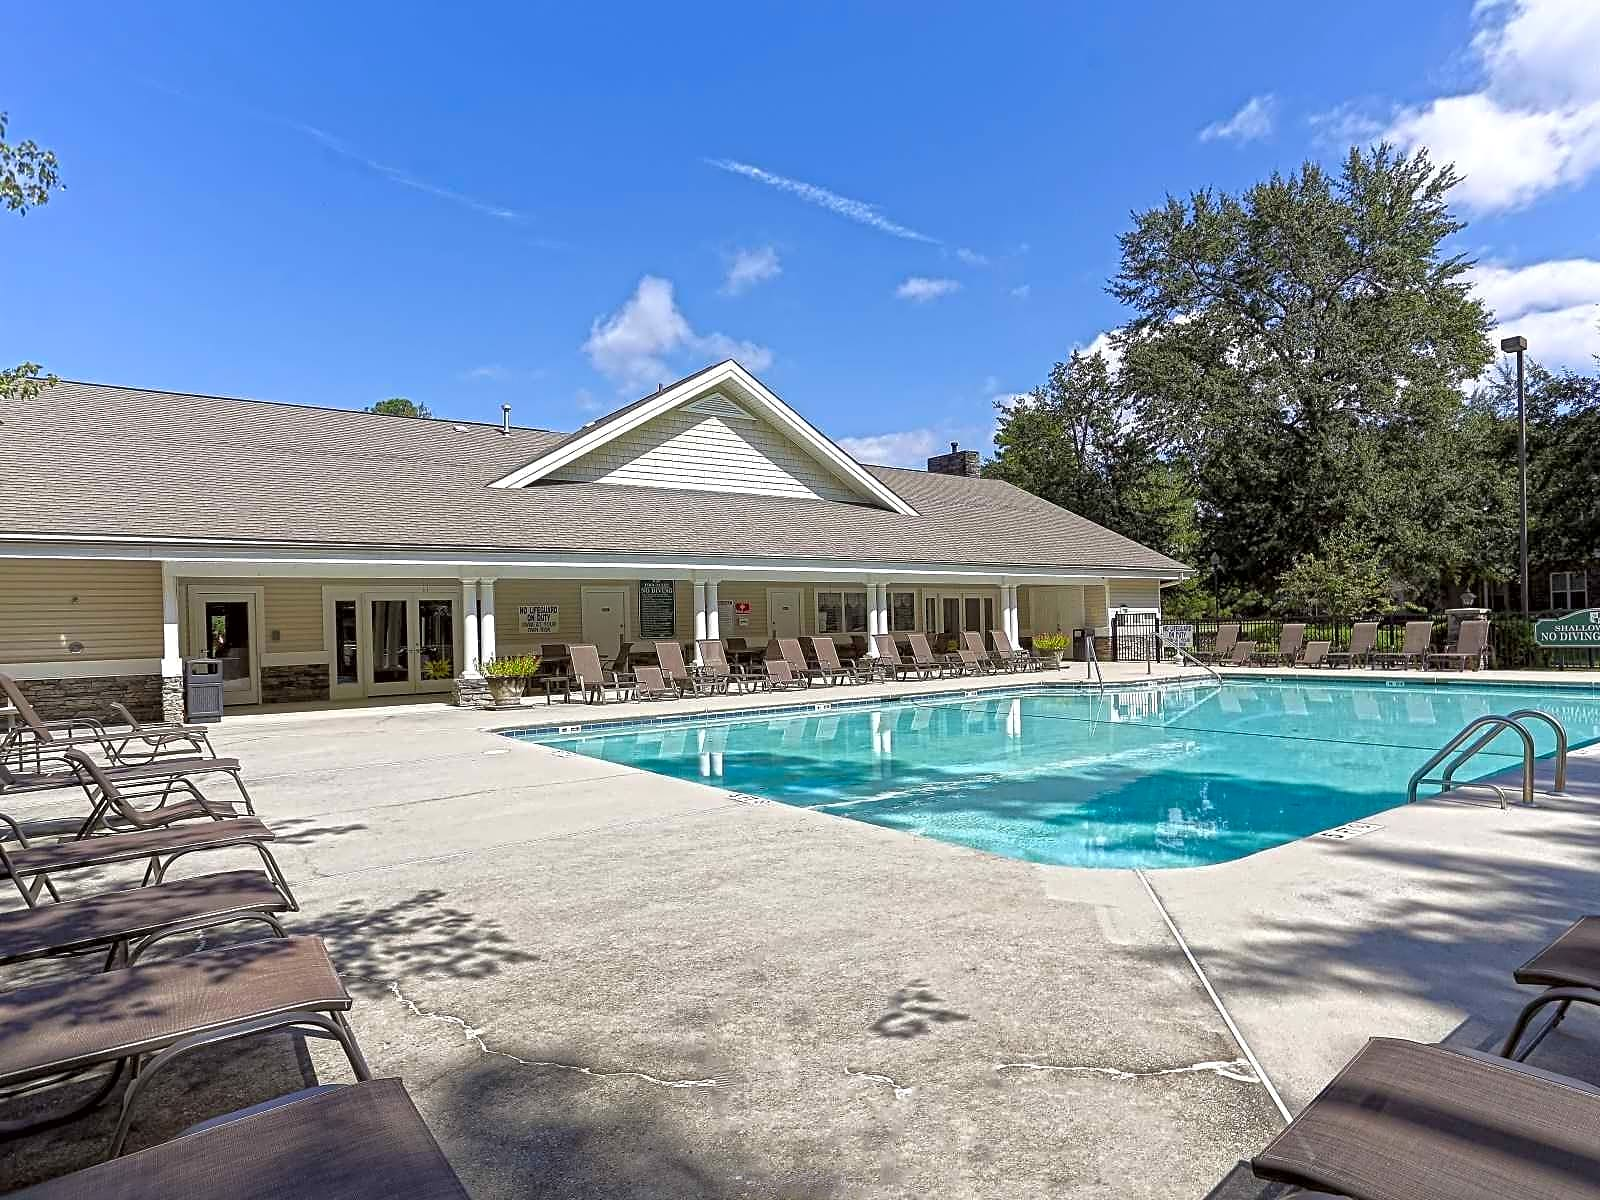 Apartments Near UofSC Wellington Farms for University of South Carolina Students in Columbia, SC